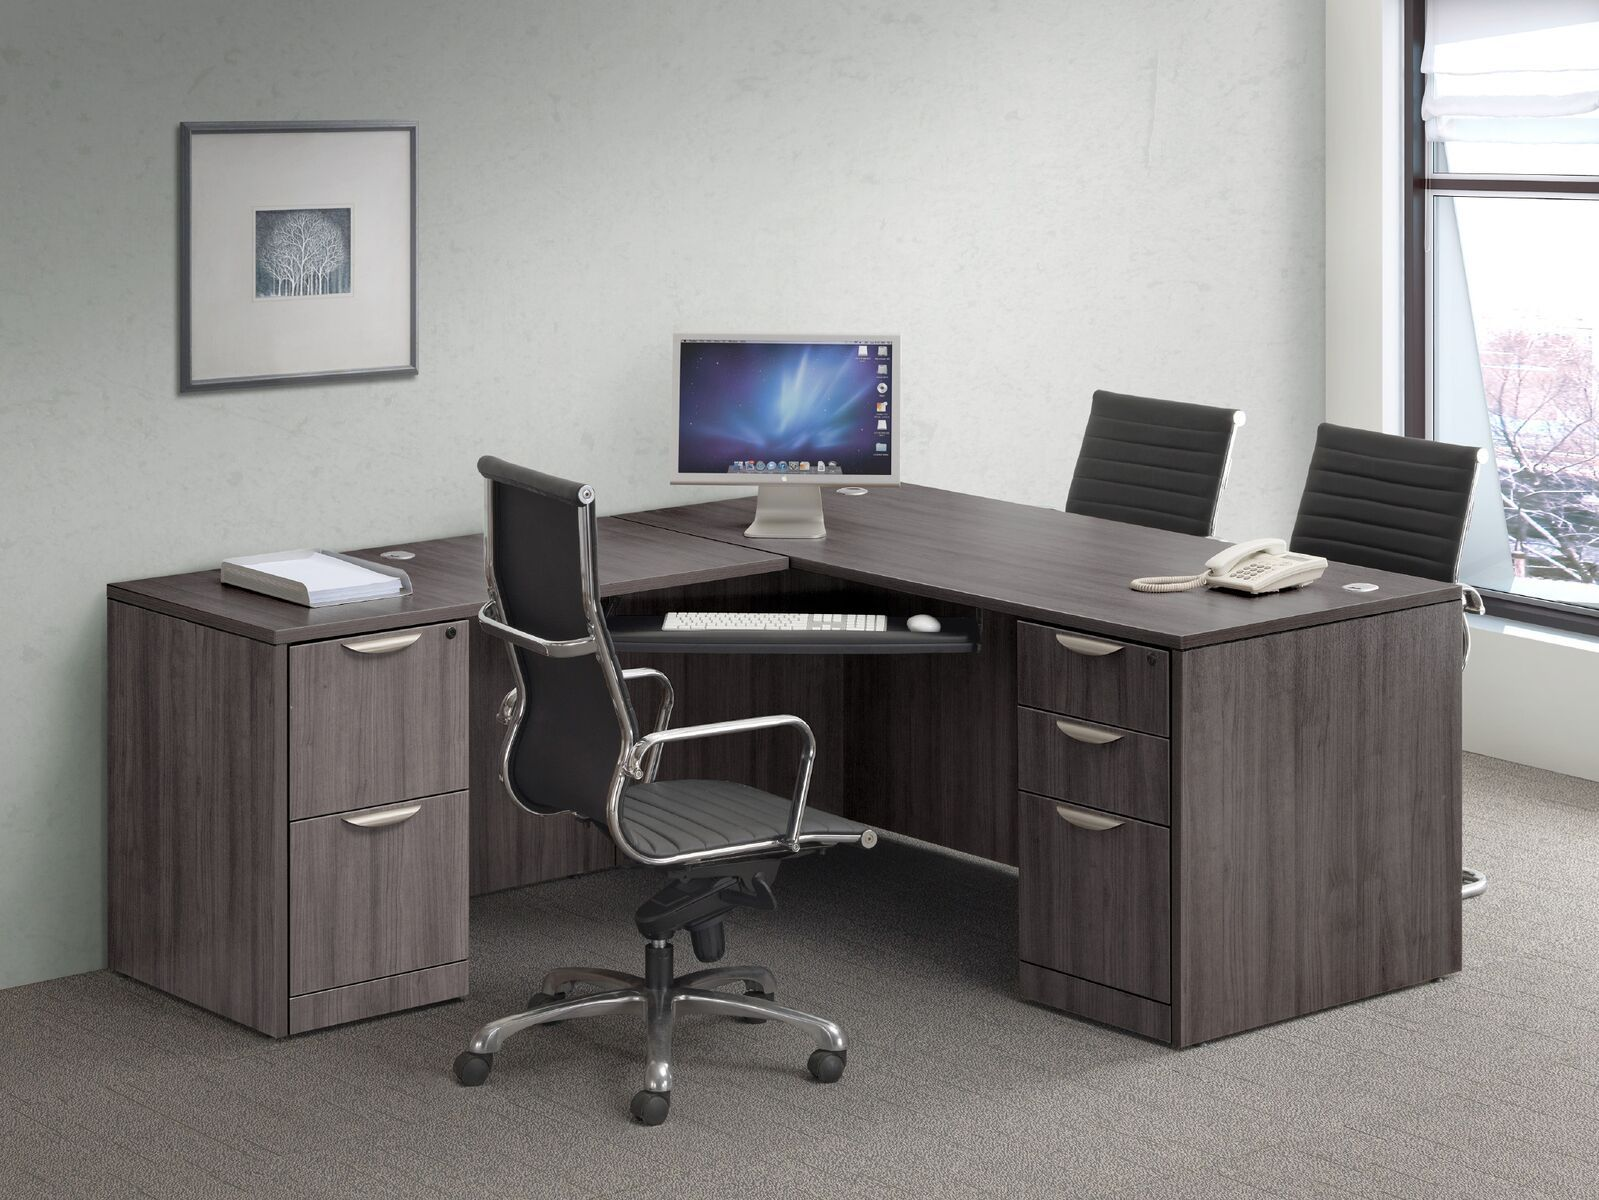 Attirant Direct Office Solutions Is The Only Name You Need To Remember If You Are  Looking For An Executive Desk As A Palm Beach, Florida Business Person.